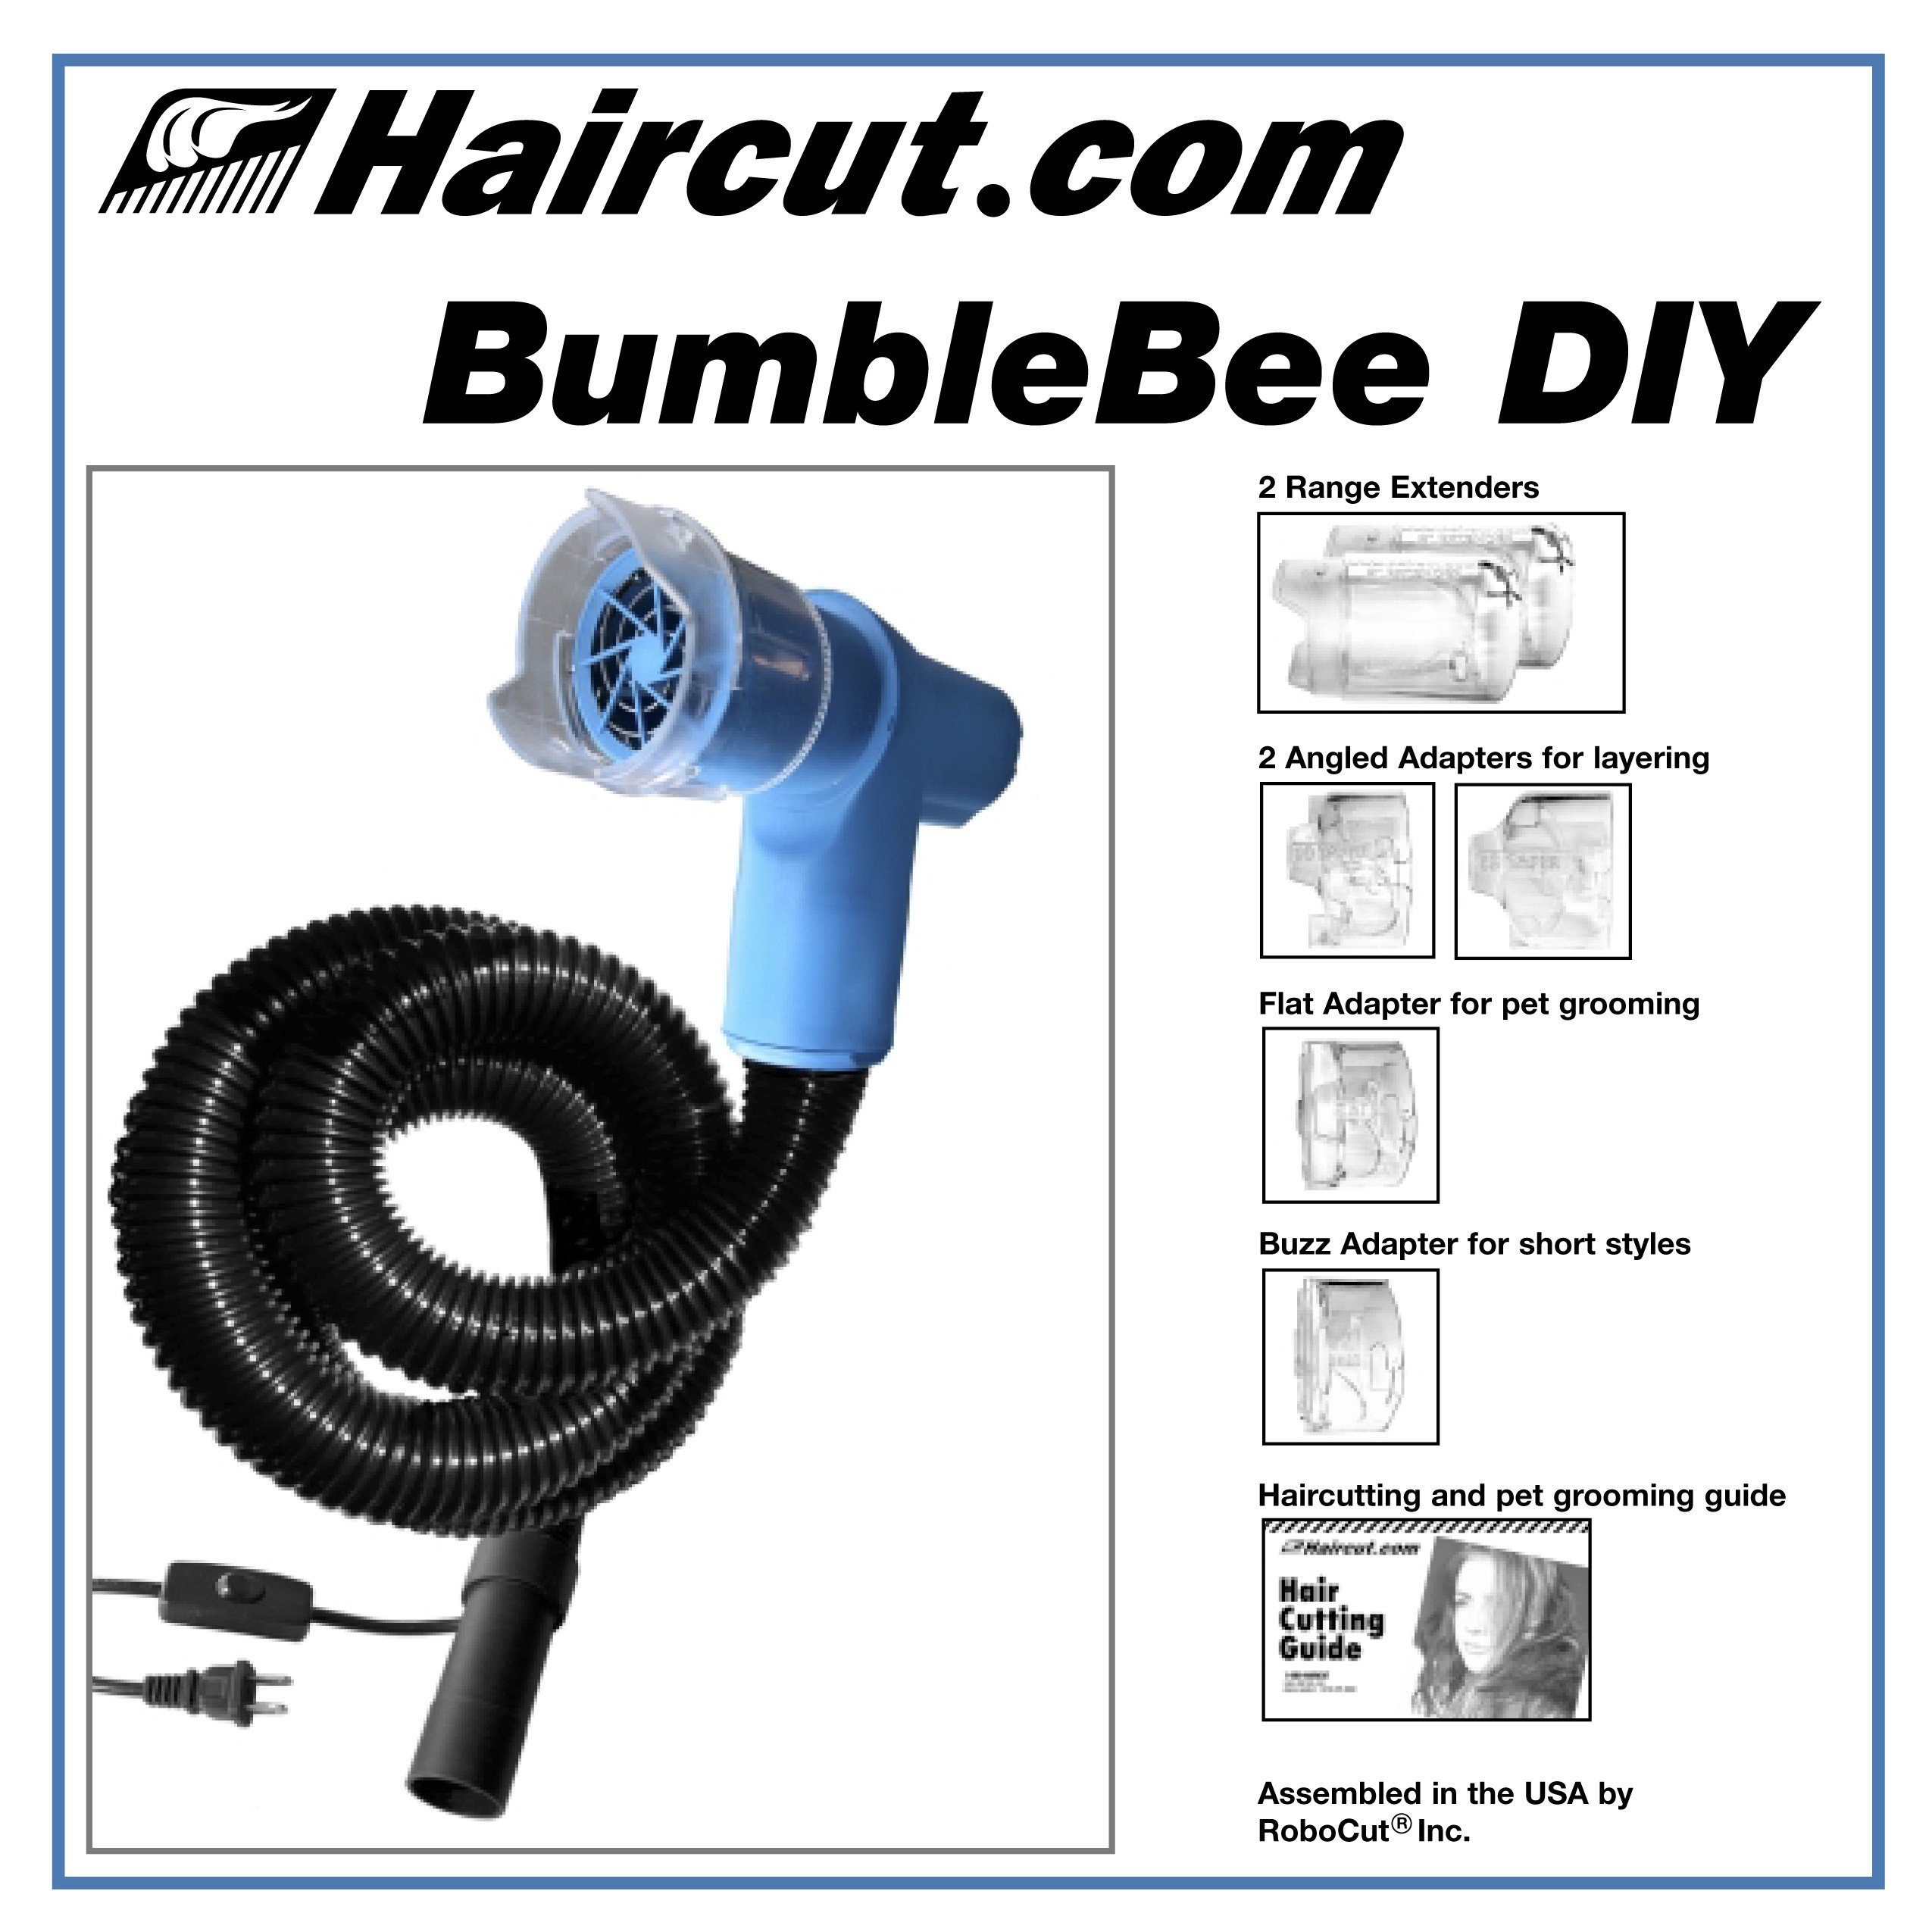 The Best Robocut Vacuum Haircutter For Easy Haircuts At Home For Pictures